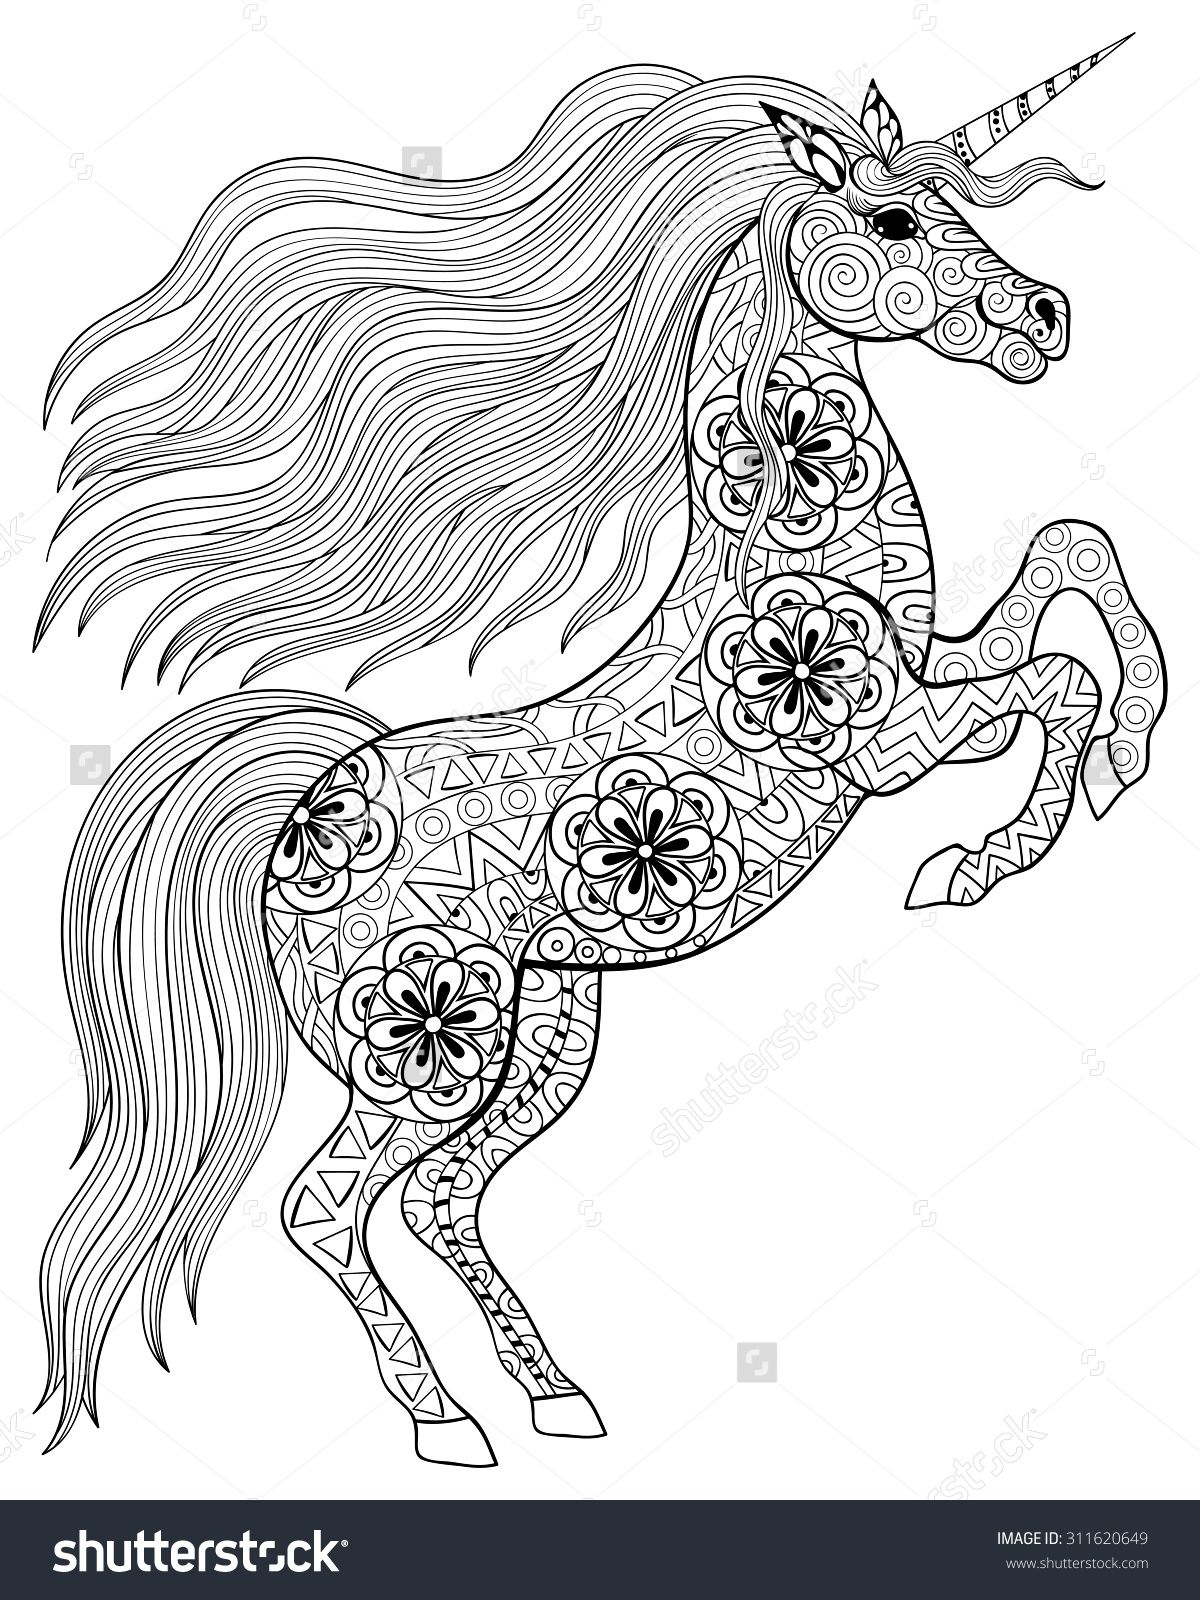 Pin By Gralyne Watkins On A Pets Unicorn Coloring Pages Antistress Coloring Animal Coloring Pages